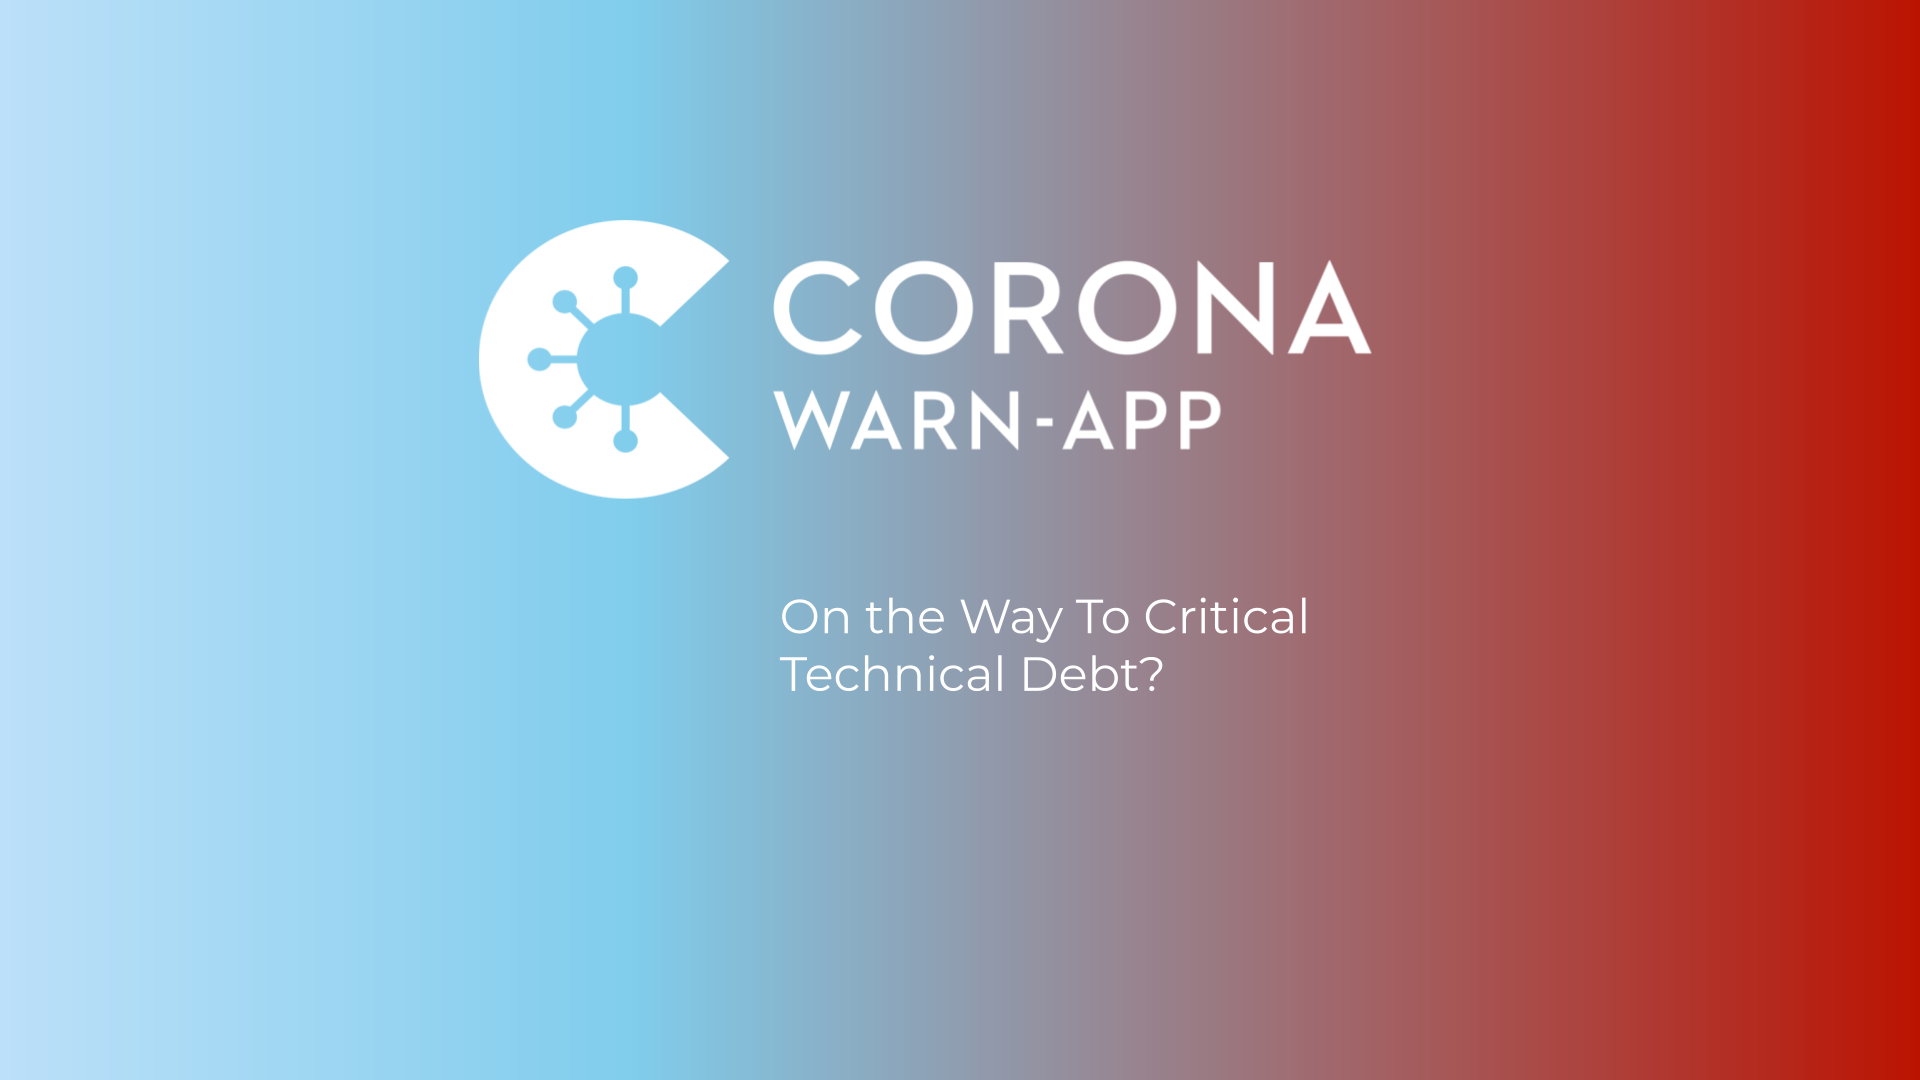 Corona-Warn-App – On the Way To Critical Technical Debt?